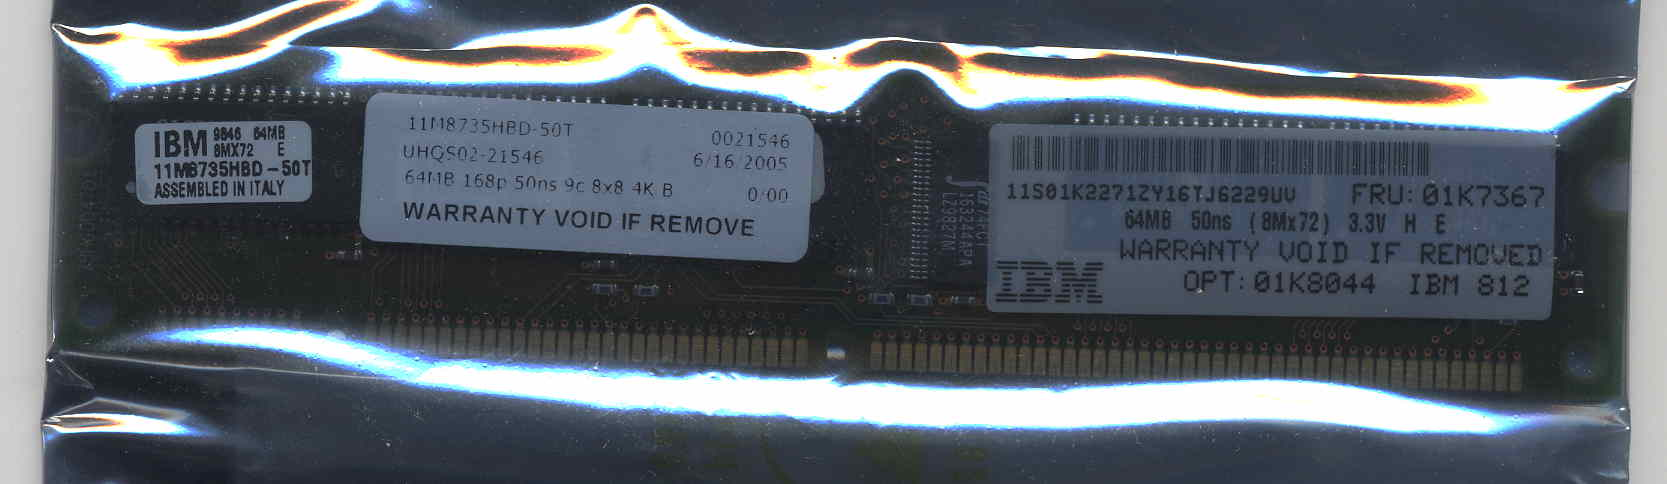 IBM  64MB 168p 50ns 9c 8x8 4K Buffered ECC EDO DIMM